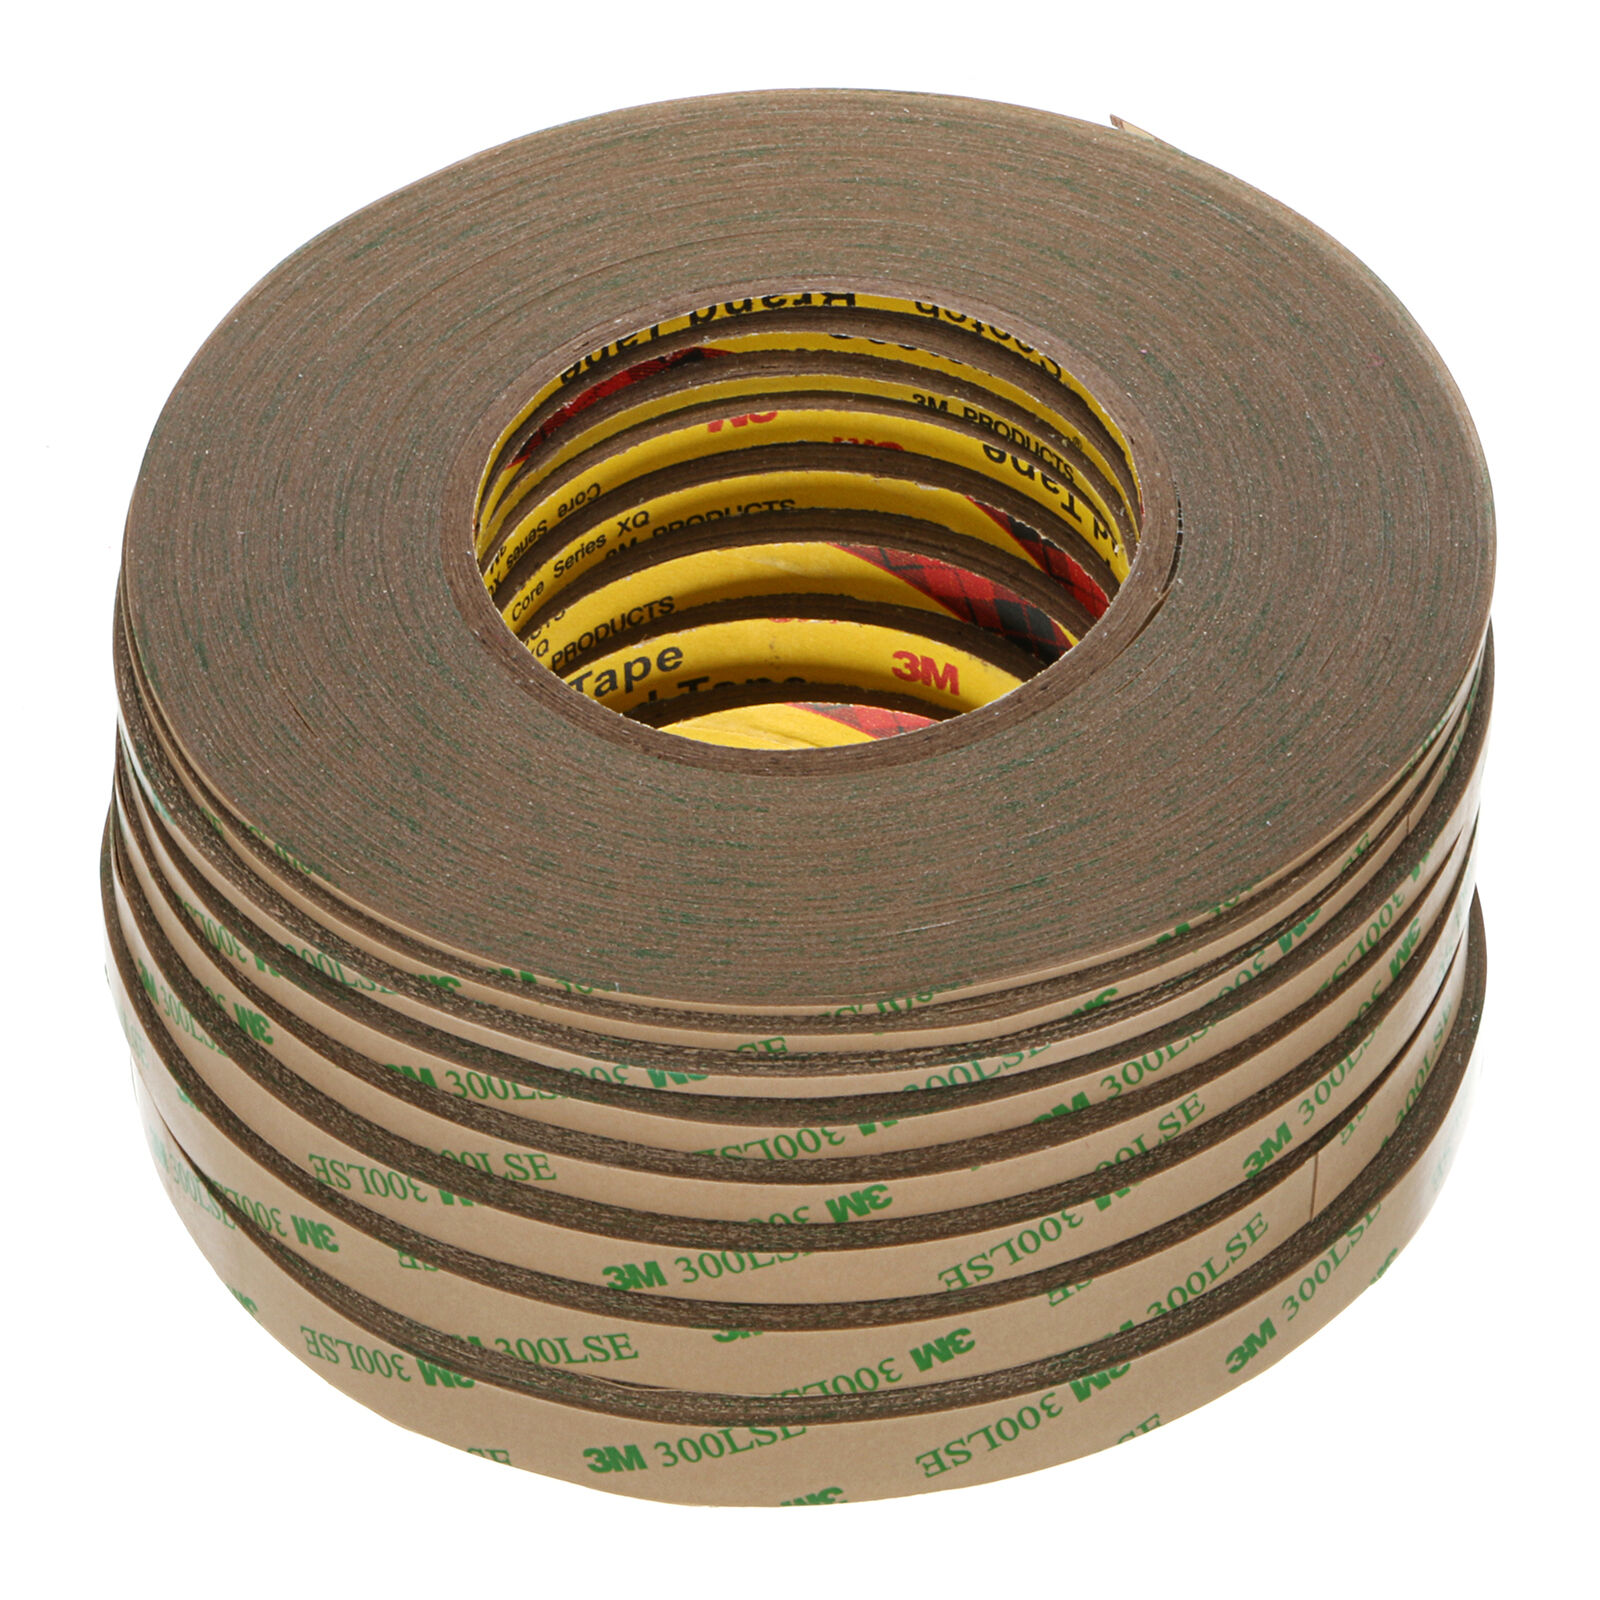 3m 300lse double sided super sticky heavy duty adhesive tape cell phone repair ebay. Black Bedroom Furniture Sets. Home Design Ideas